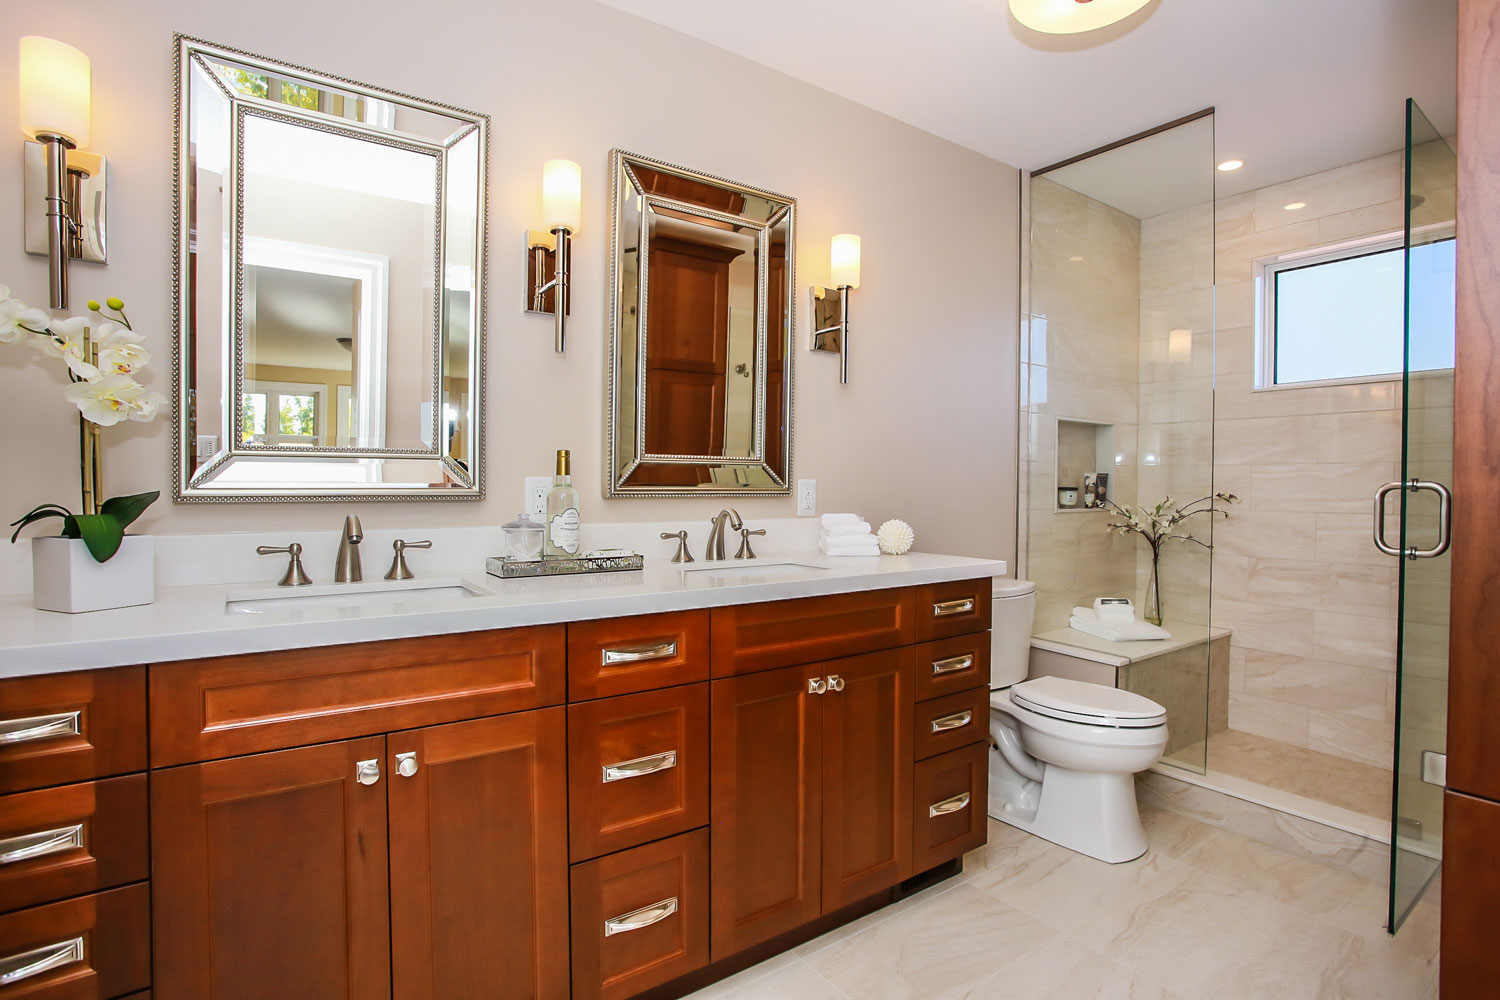 Traditional ensuite with cherry cabinets and white countertop and standup shower - Total Living Concepts barrie ontario